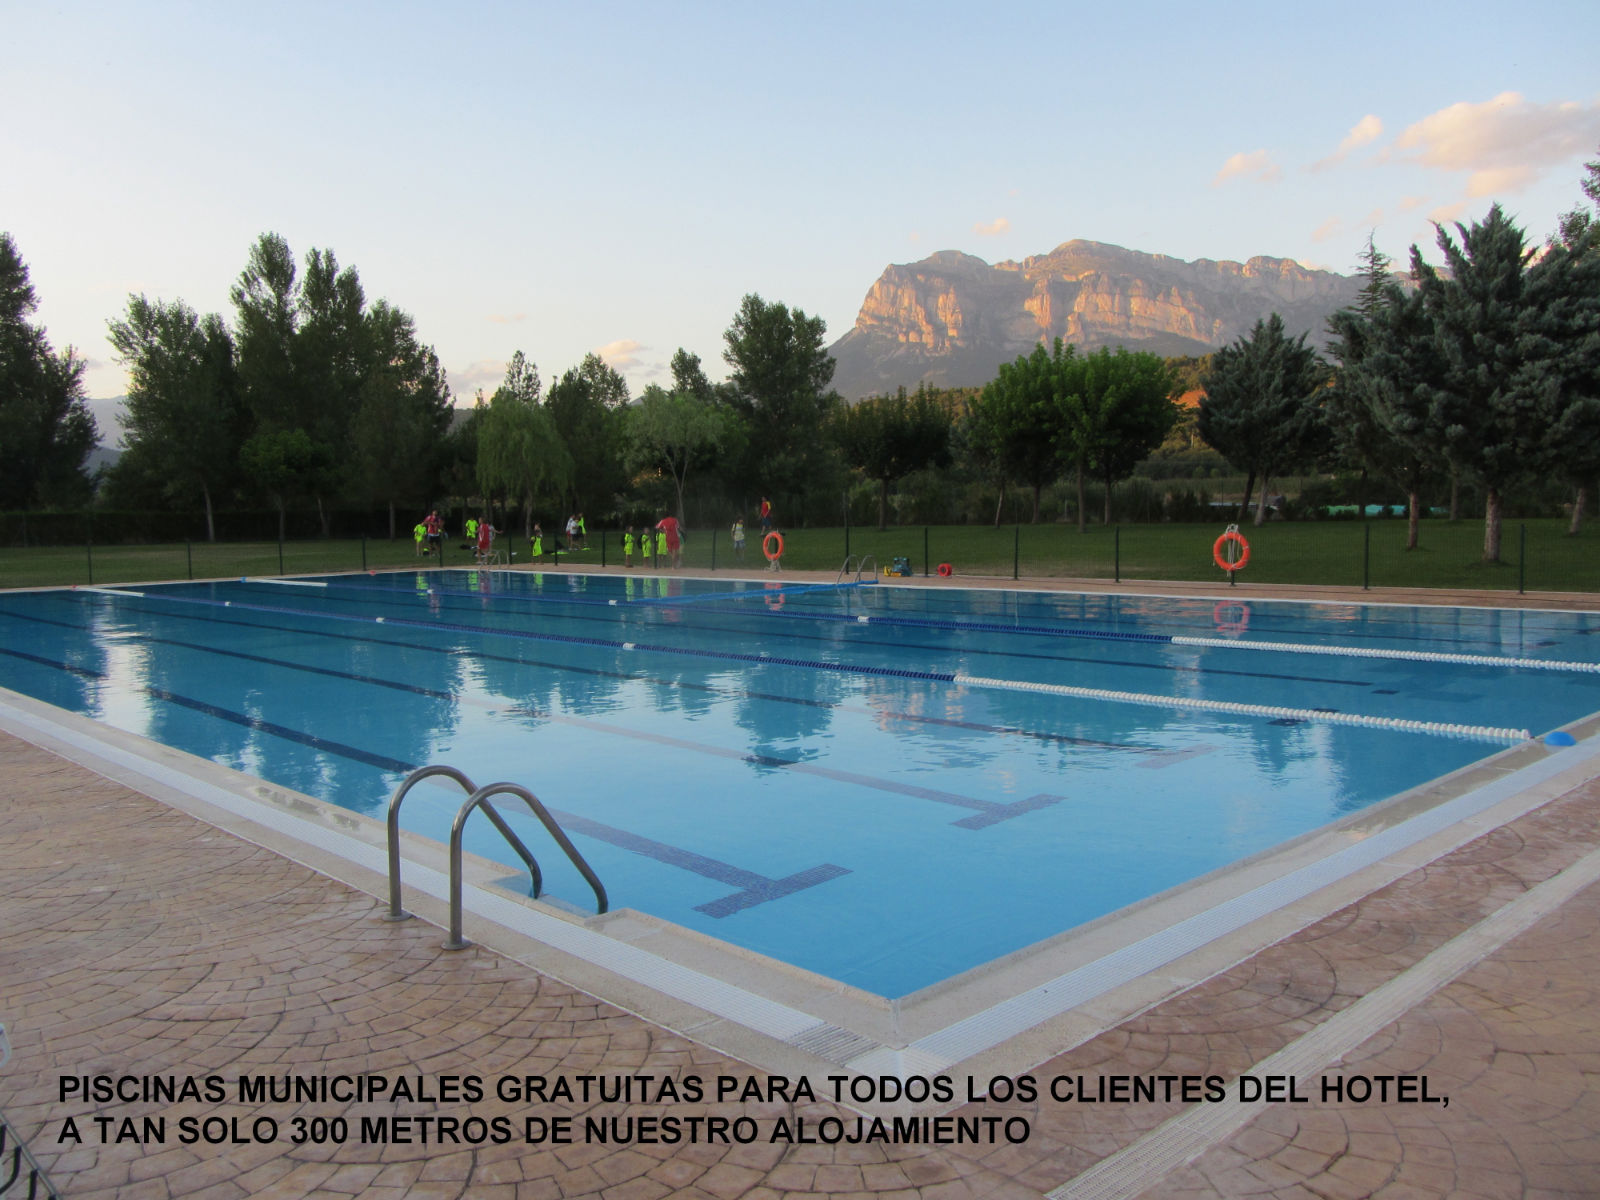 FREE ACCESS TO THE MUNICIPAL POOL